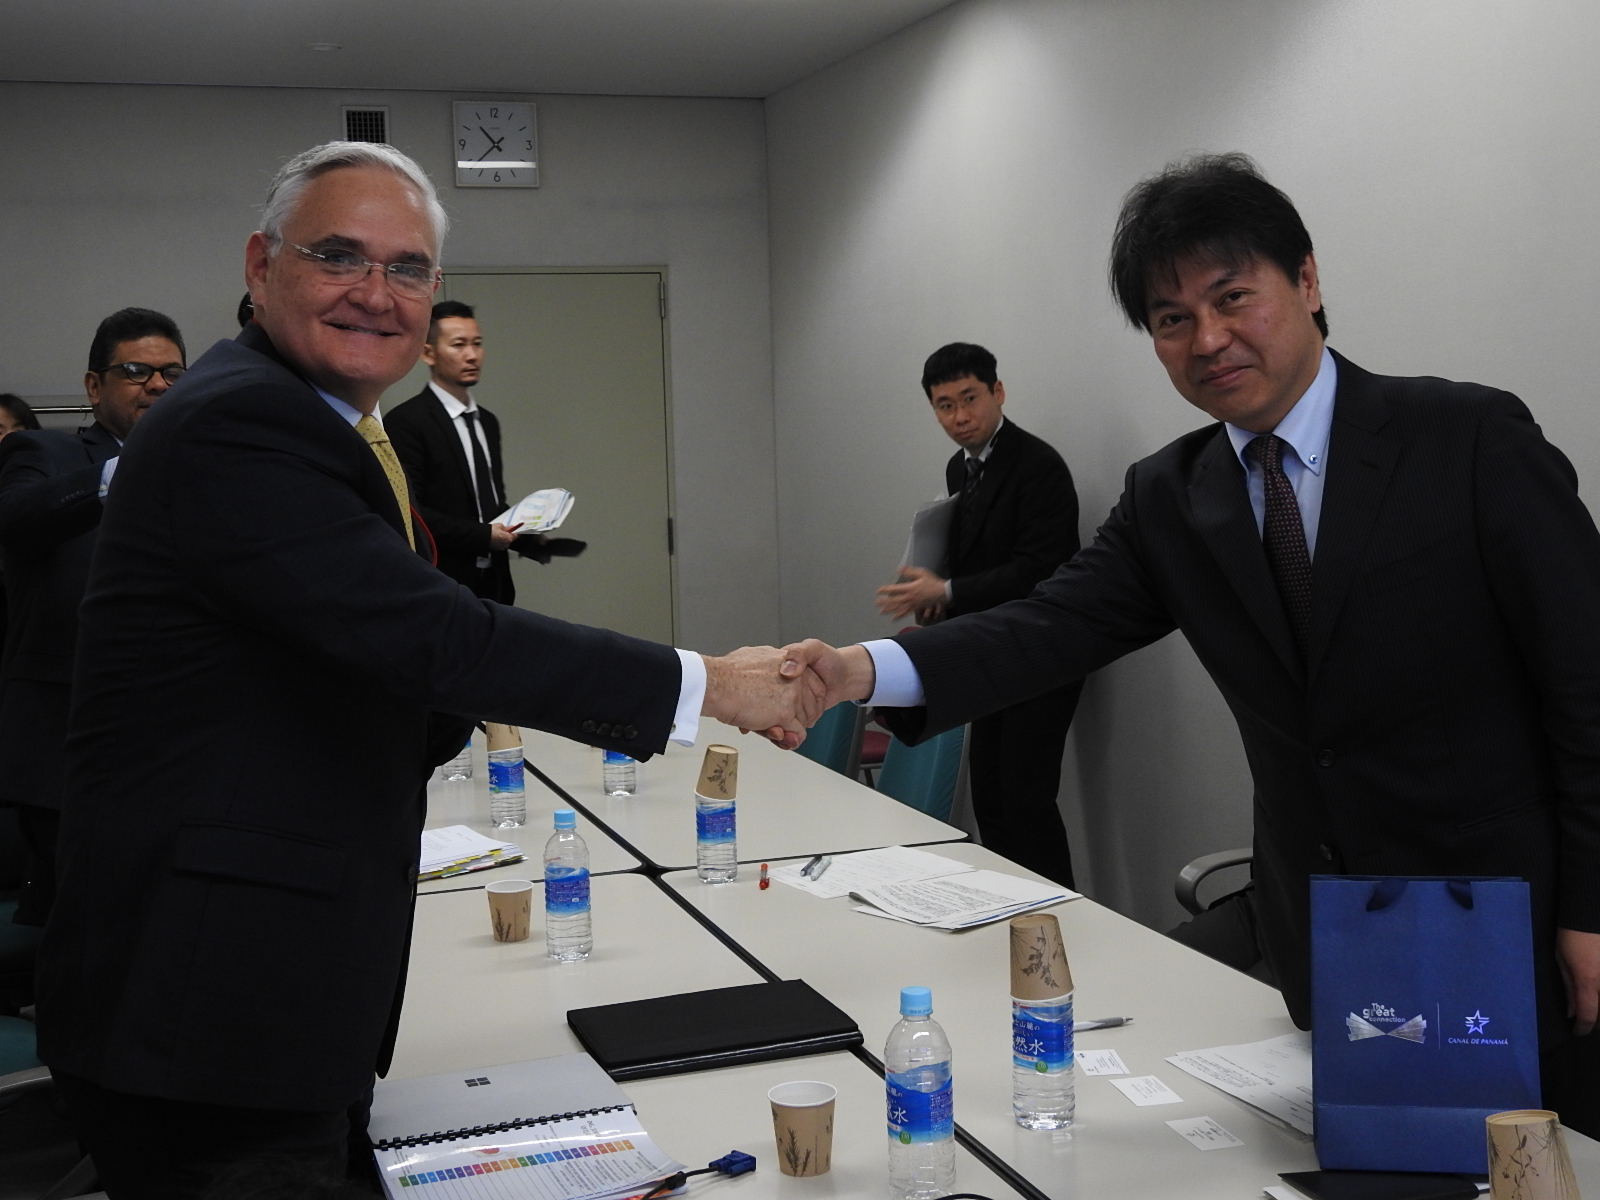 From the left, Administrator Quijano and Mr. Ryuichi Yamashita, Director-General of Oil, Gas and Mineral Resources Department of the Agency for Natural Resources and Energy